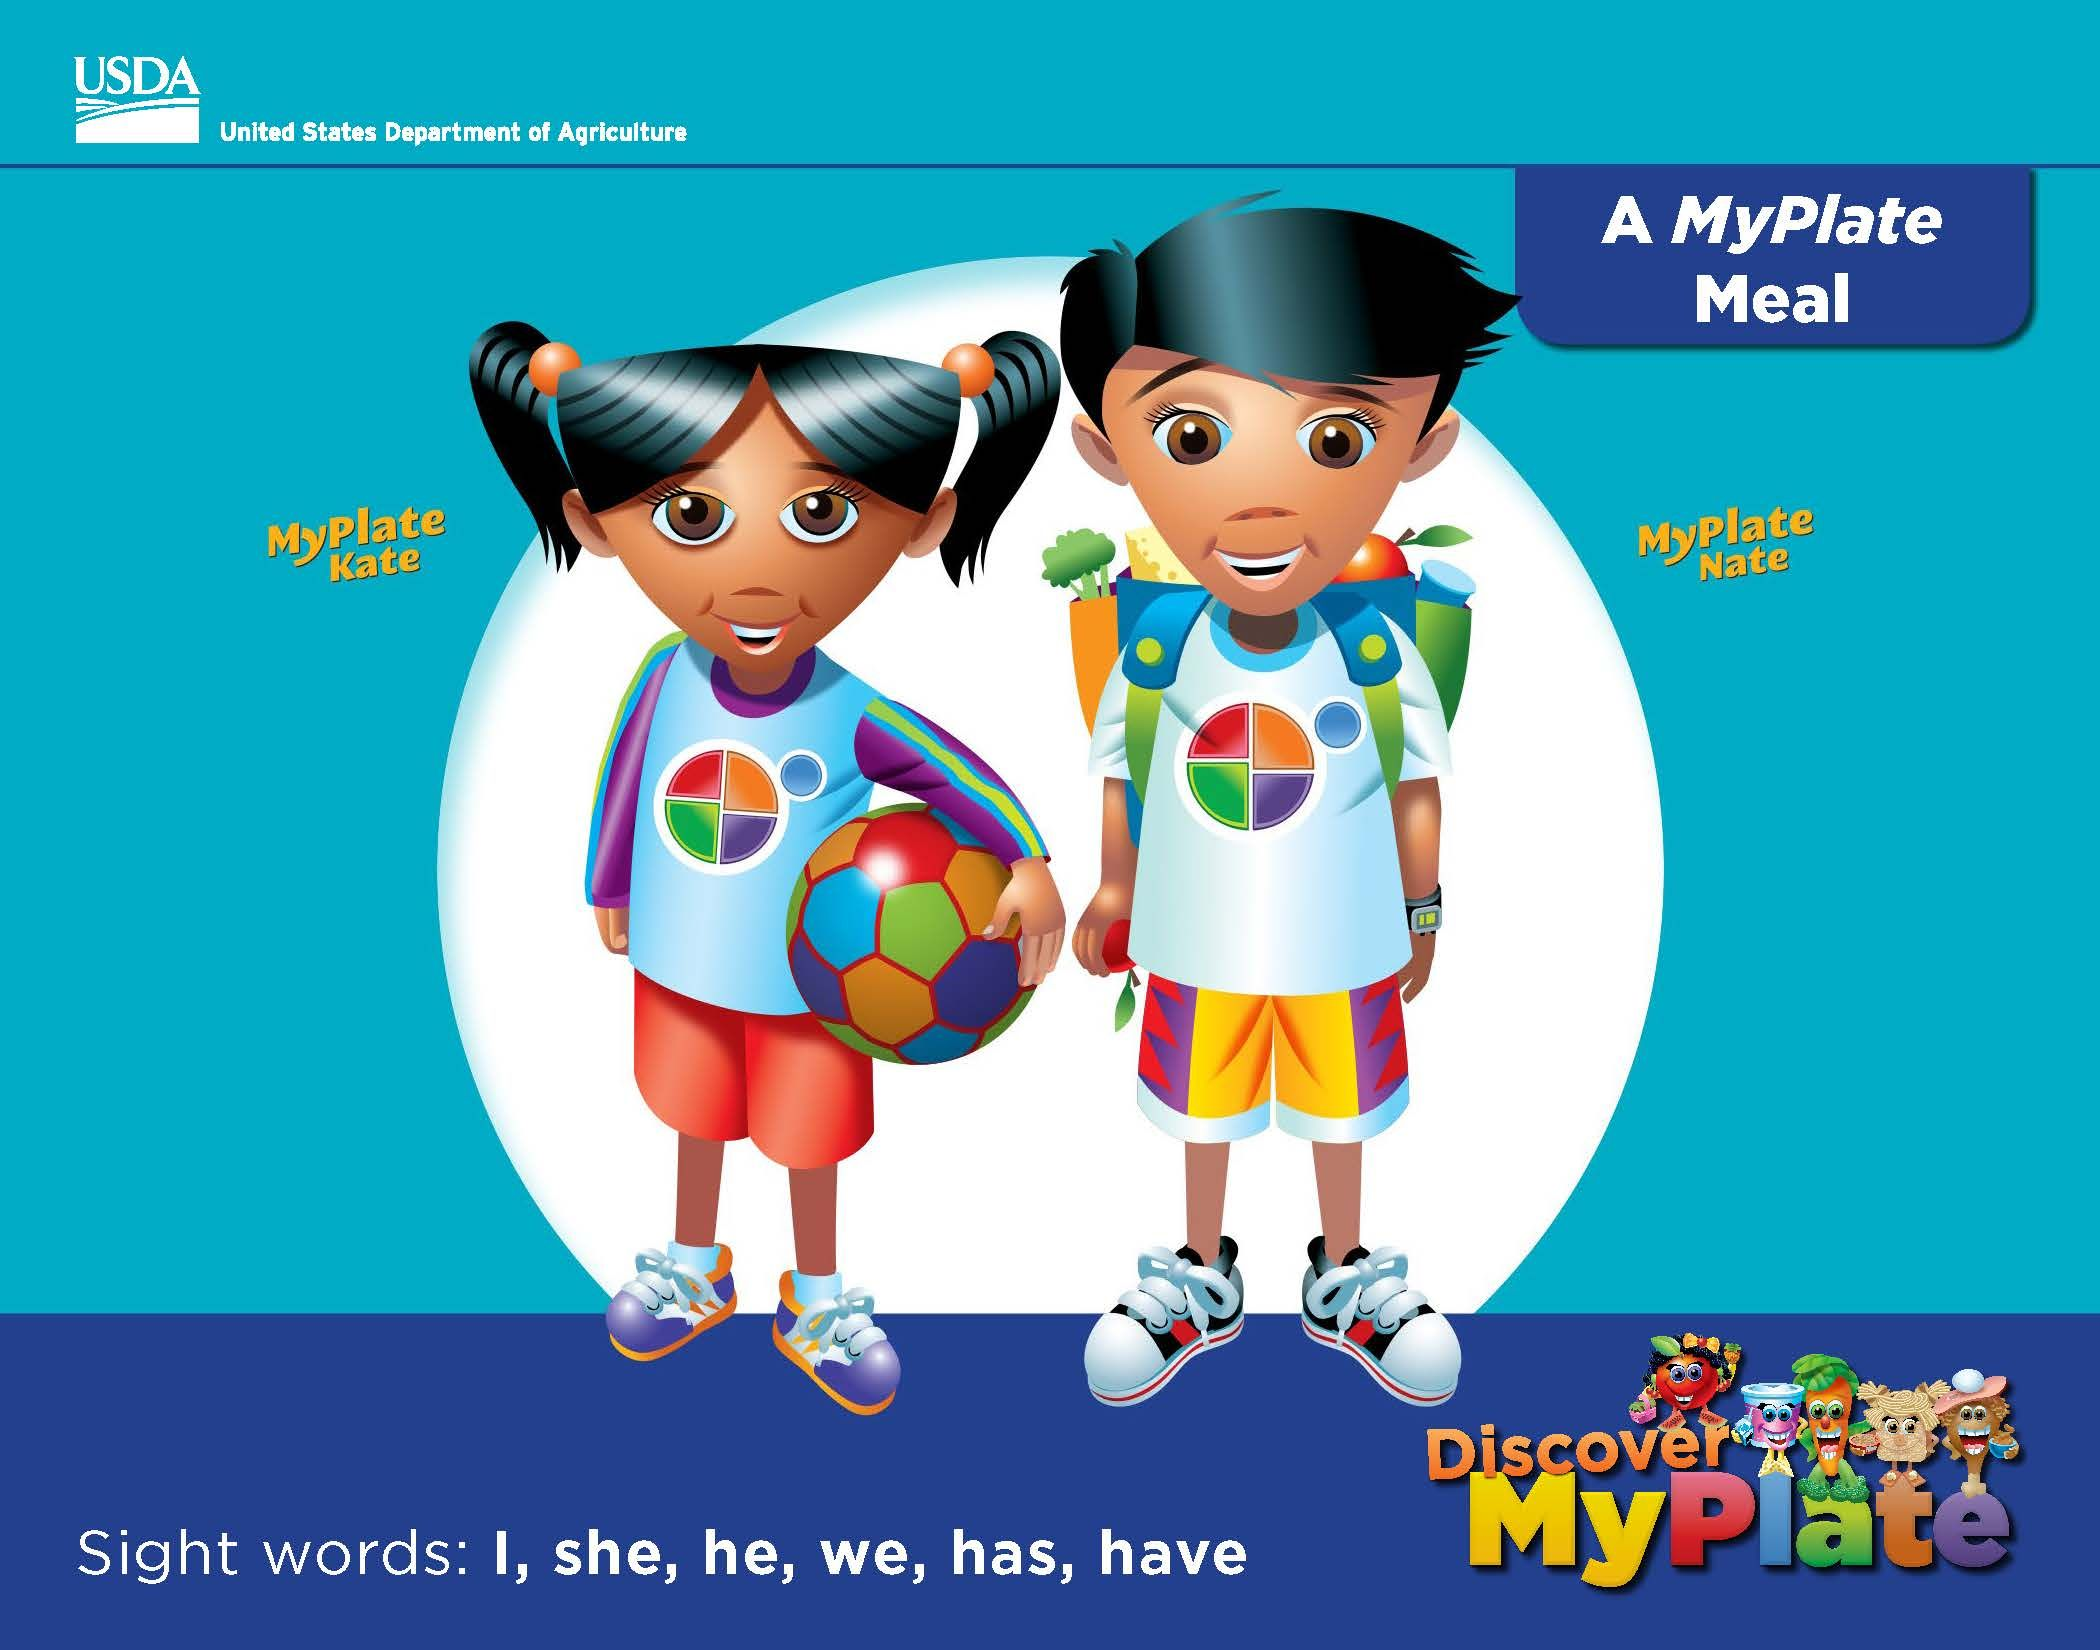 A Myplate Meal Is A Story For Beginning Readers In